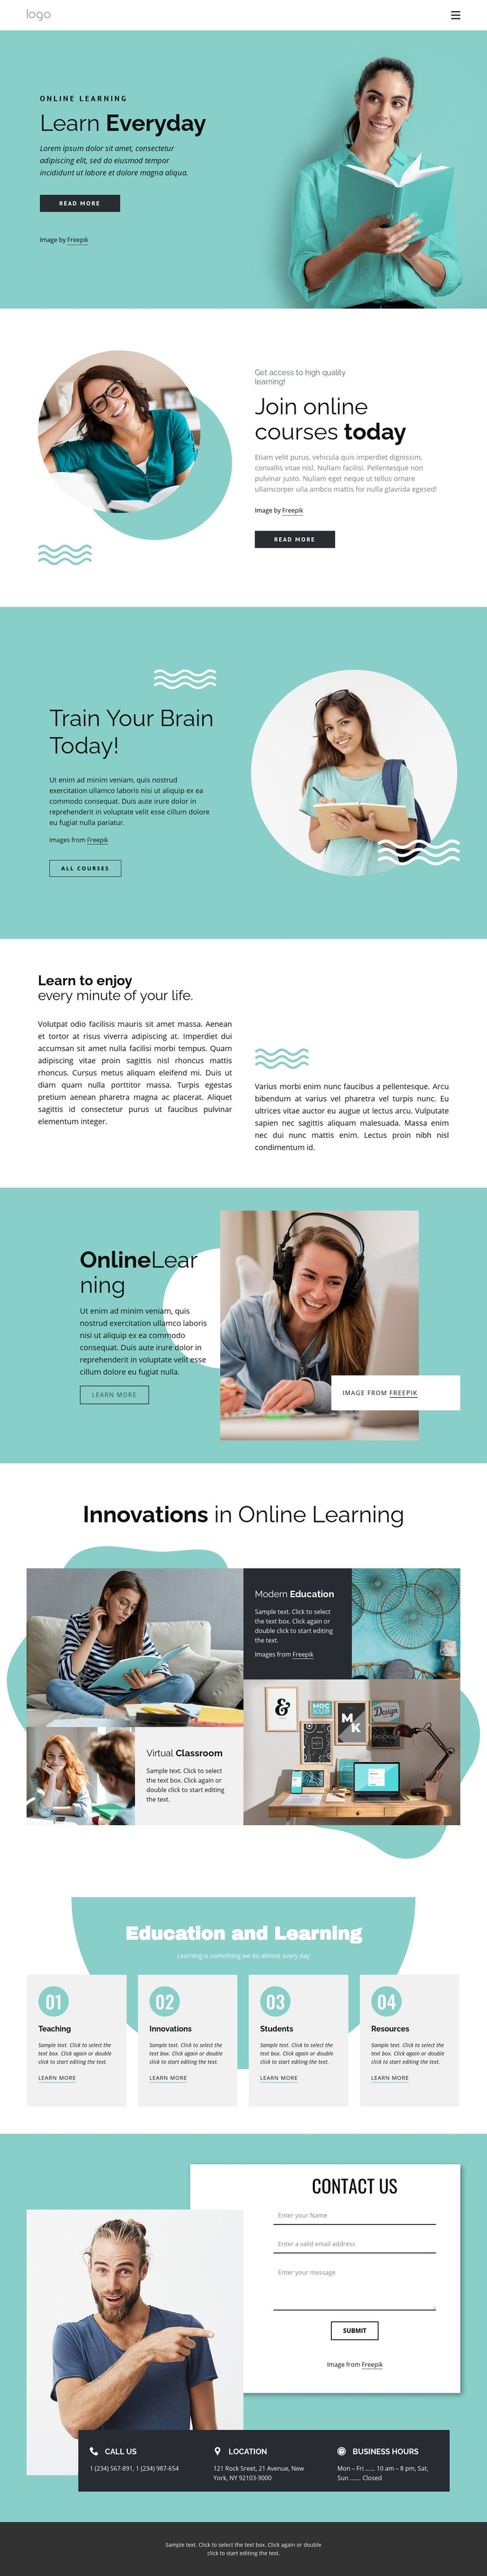 Learning is a lifelong process Web Page Designer